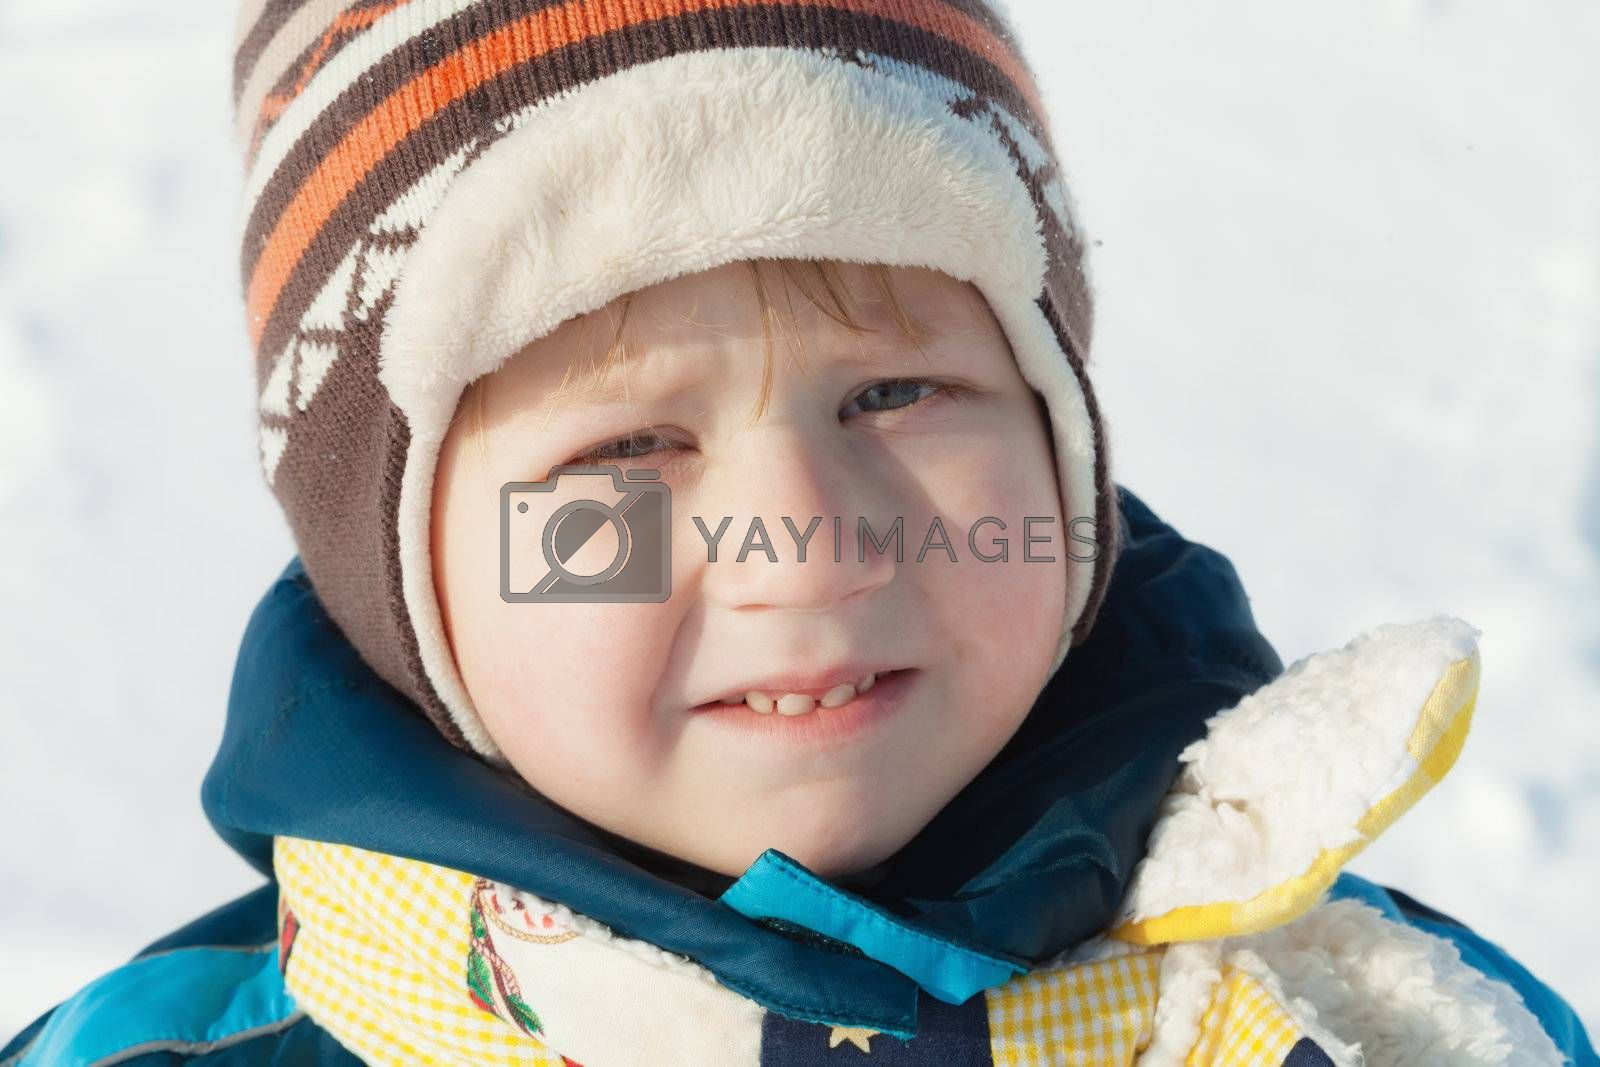 Outdoor winter portrait of a little boy